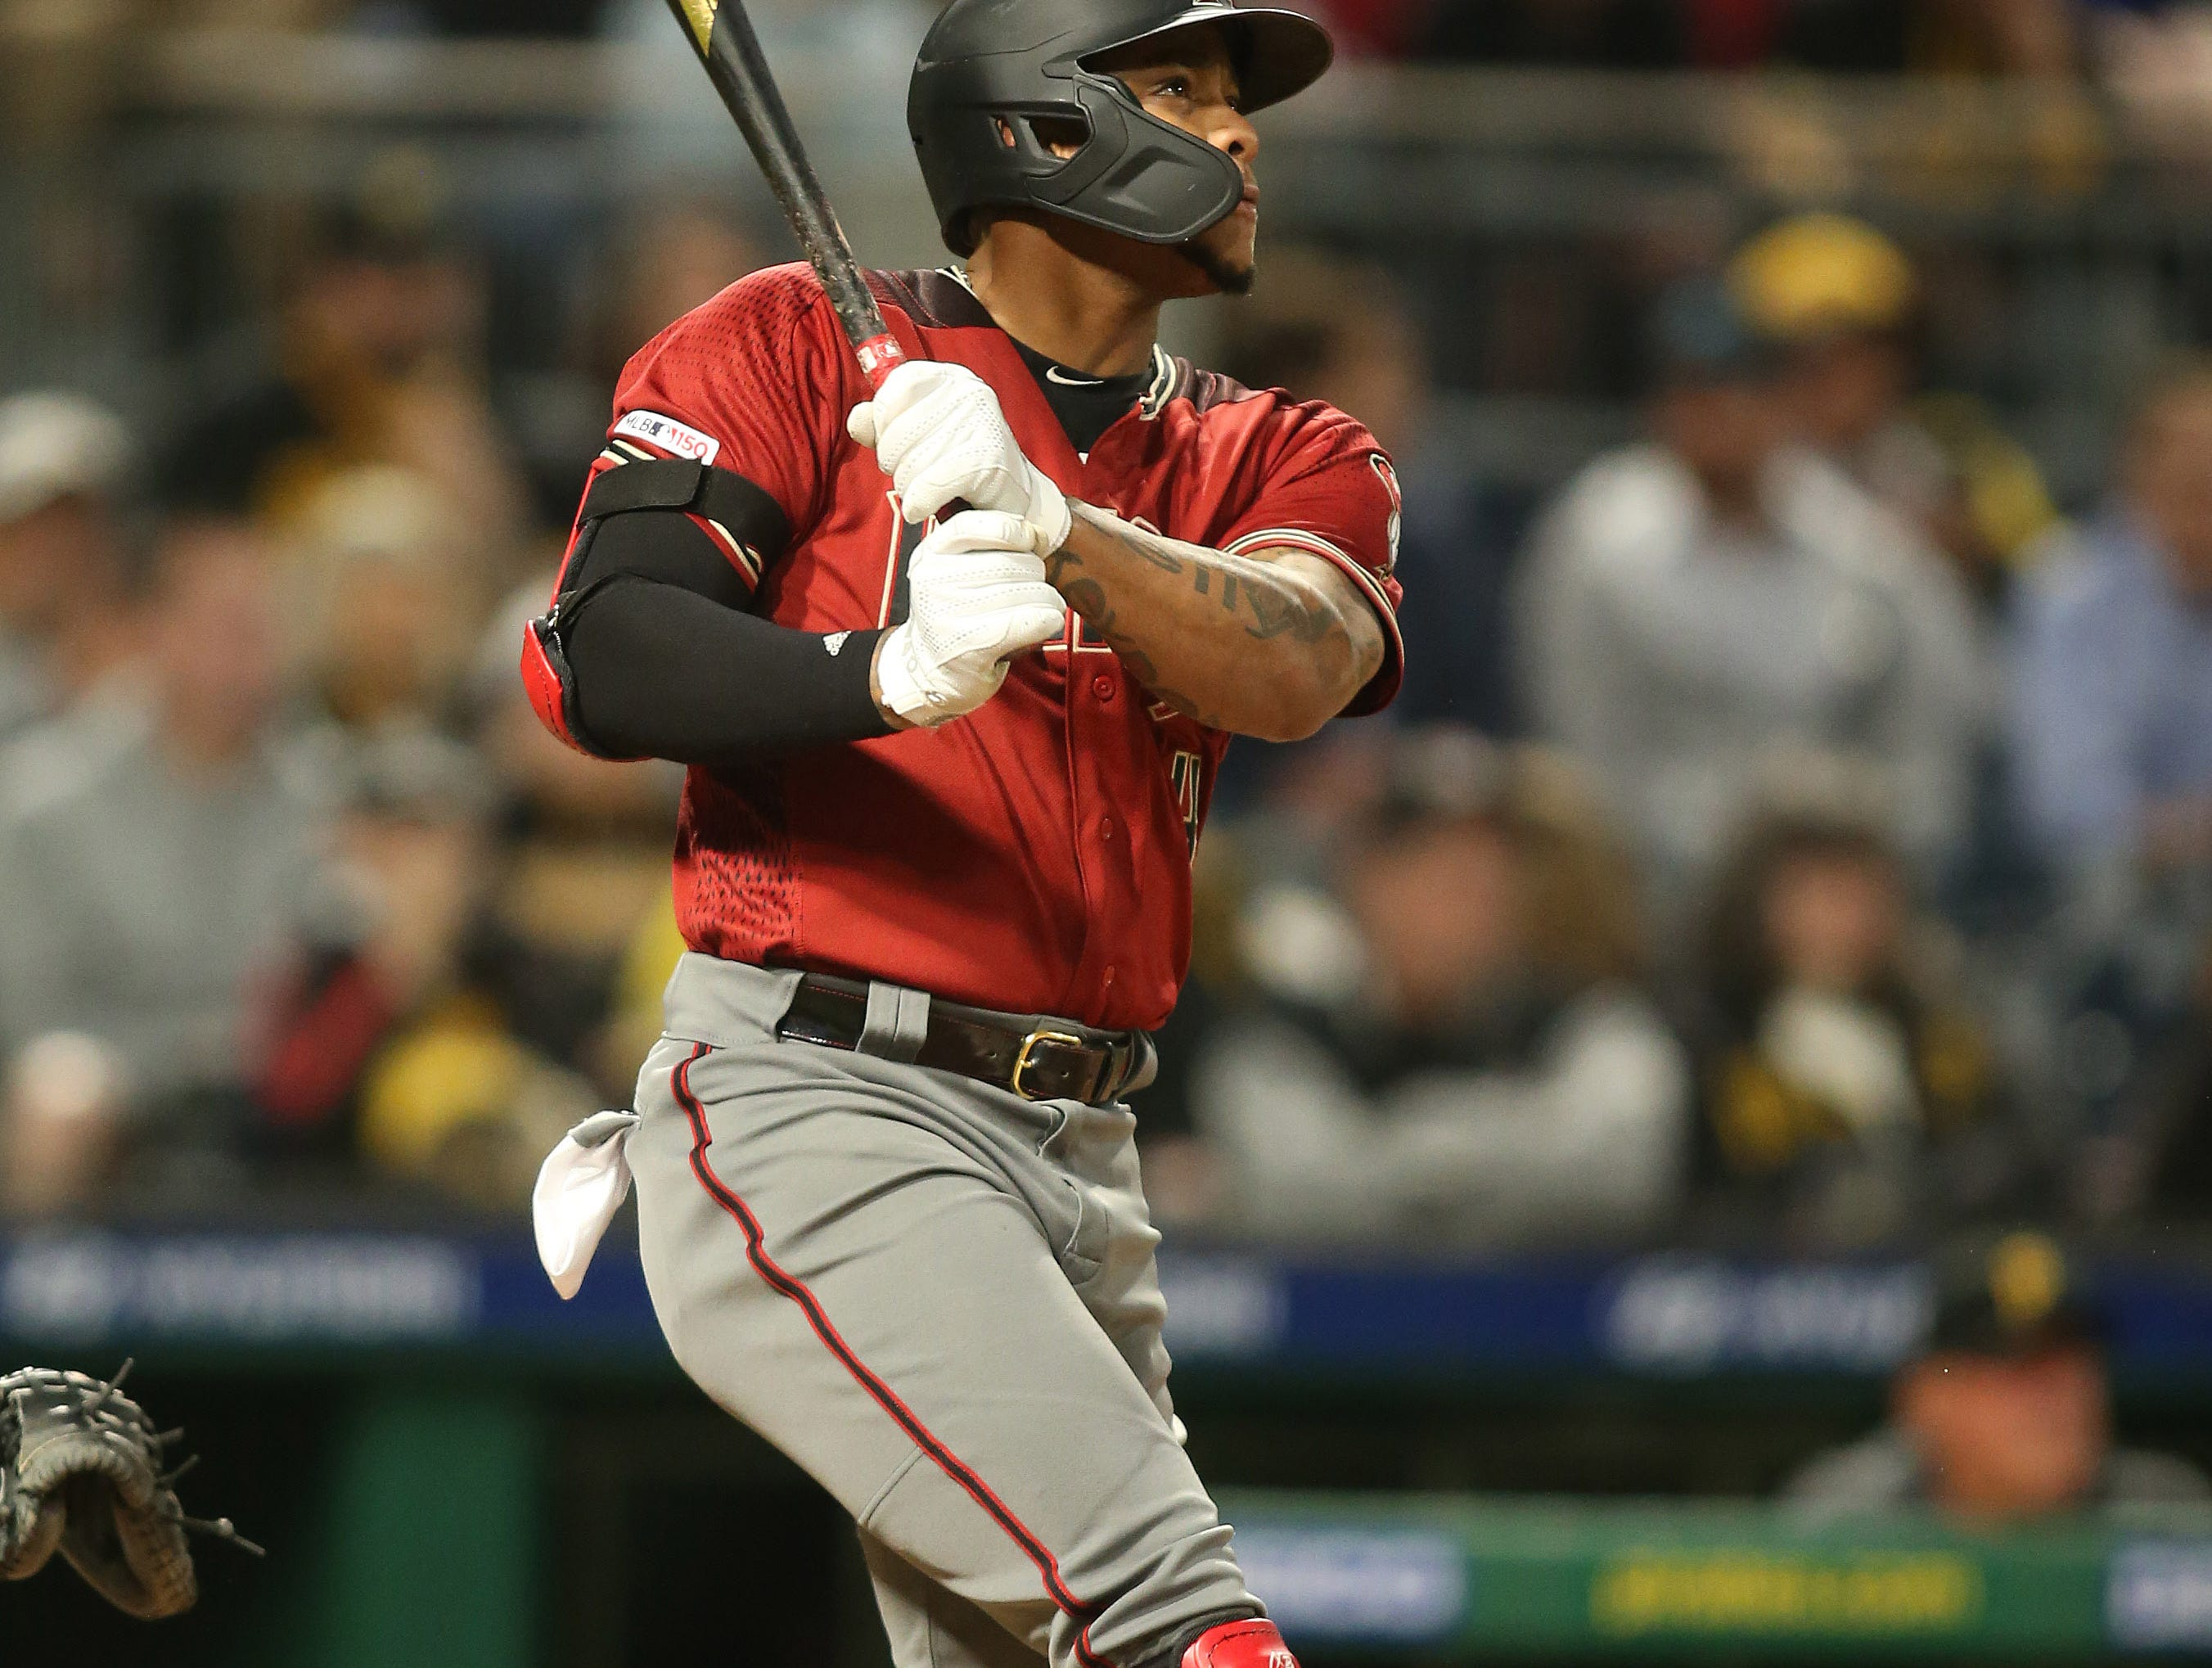 Apr 24, 2019; Pittsburgh, PA, USA;  Arizona Diamondbacks center fielder Ketel Marte (4) hits a solo home run against the Pittsburgh Pirates during the fifth inning at PNC Park. Mandatory Credit: Charles LeClaire-USA TODAY Sports